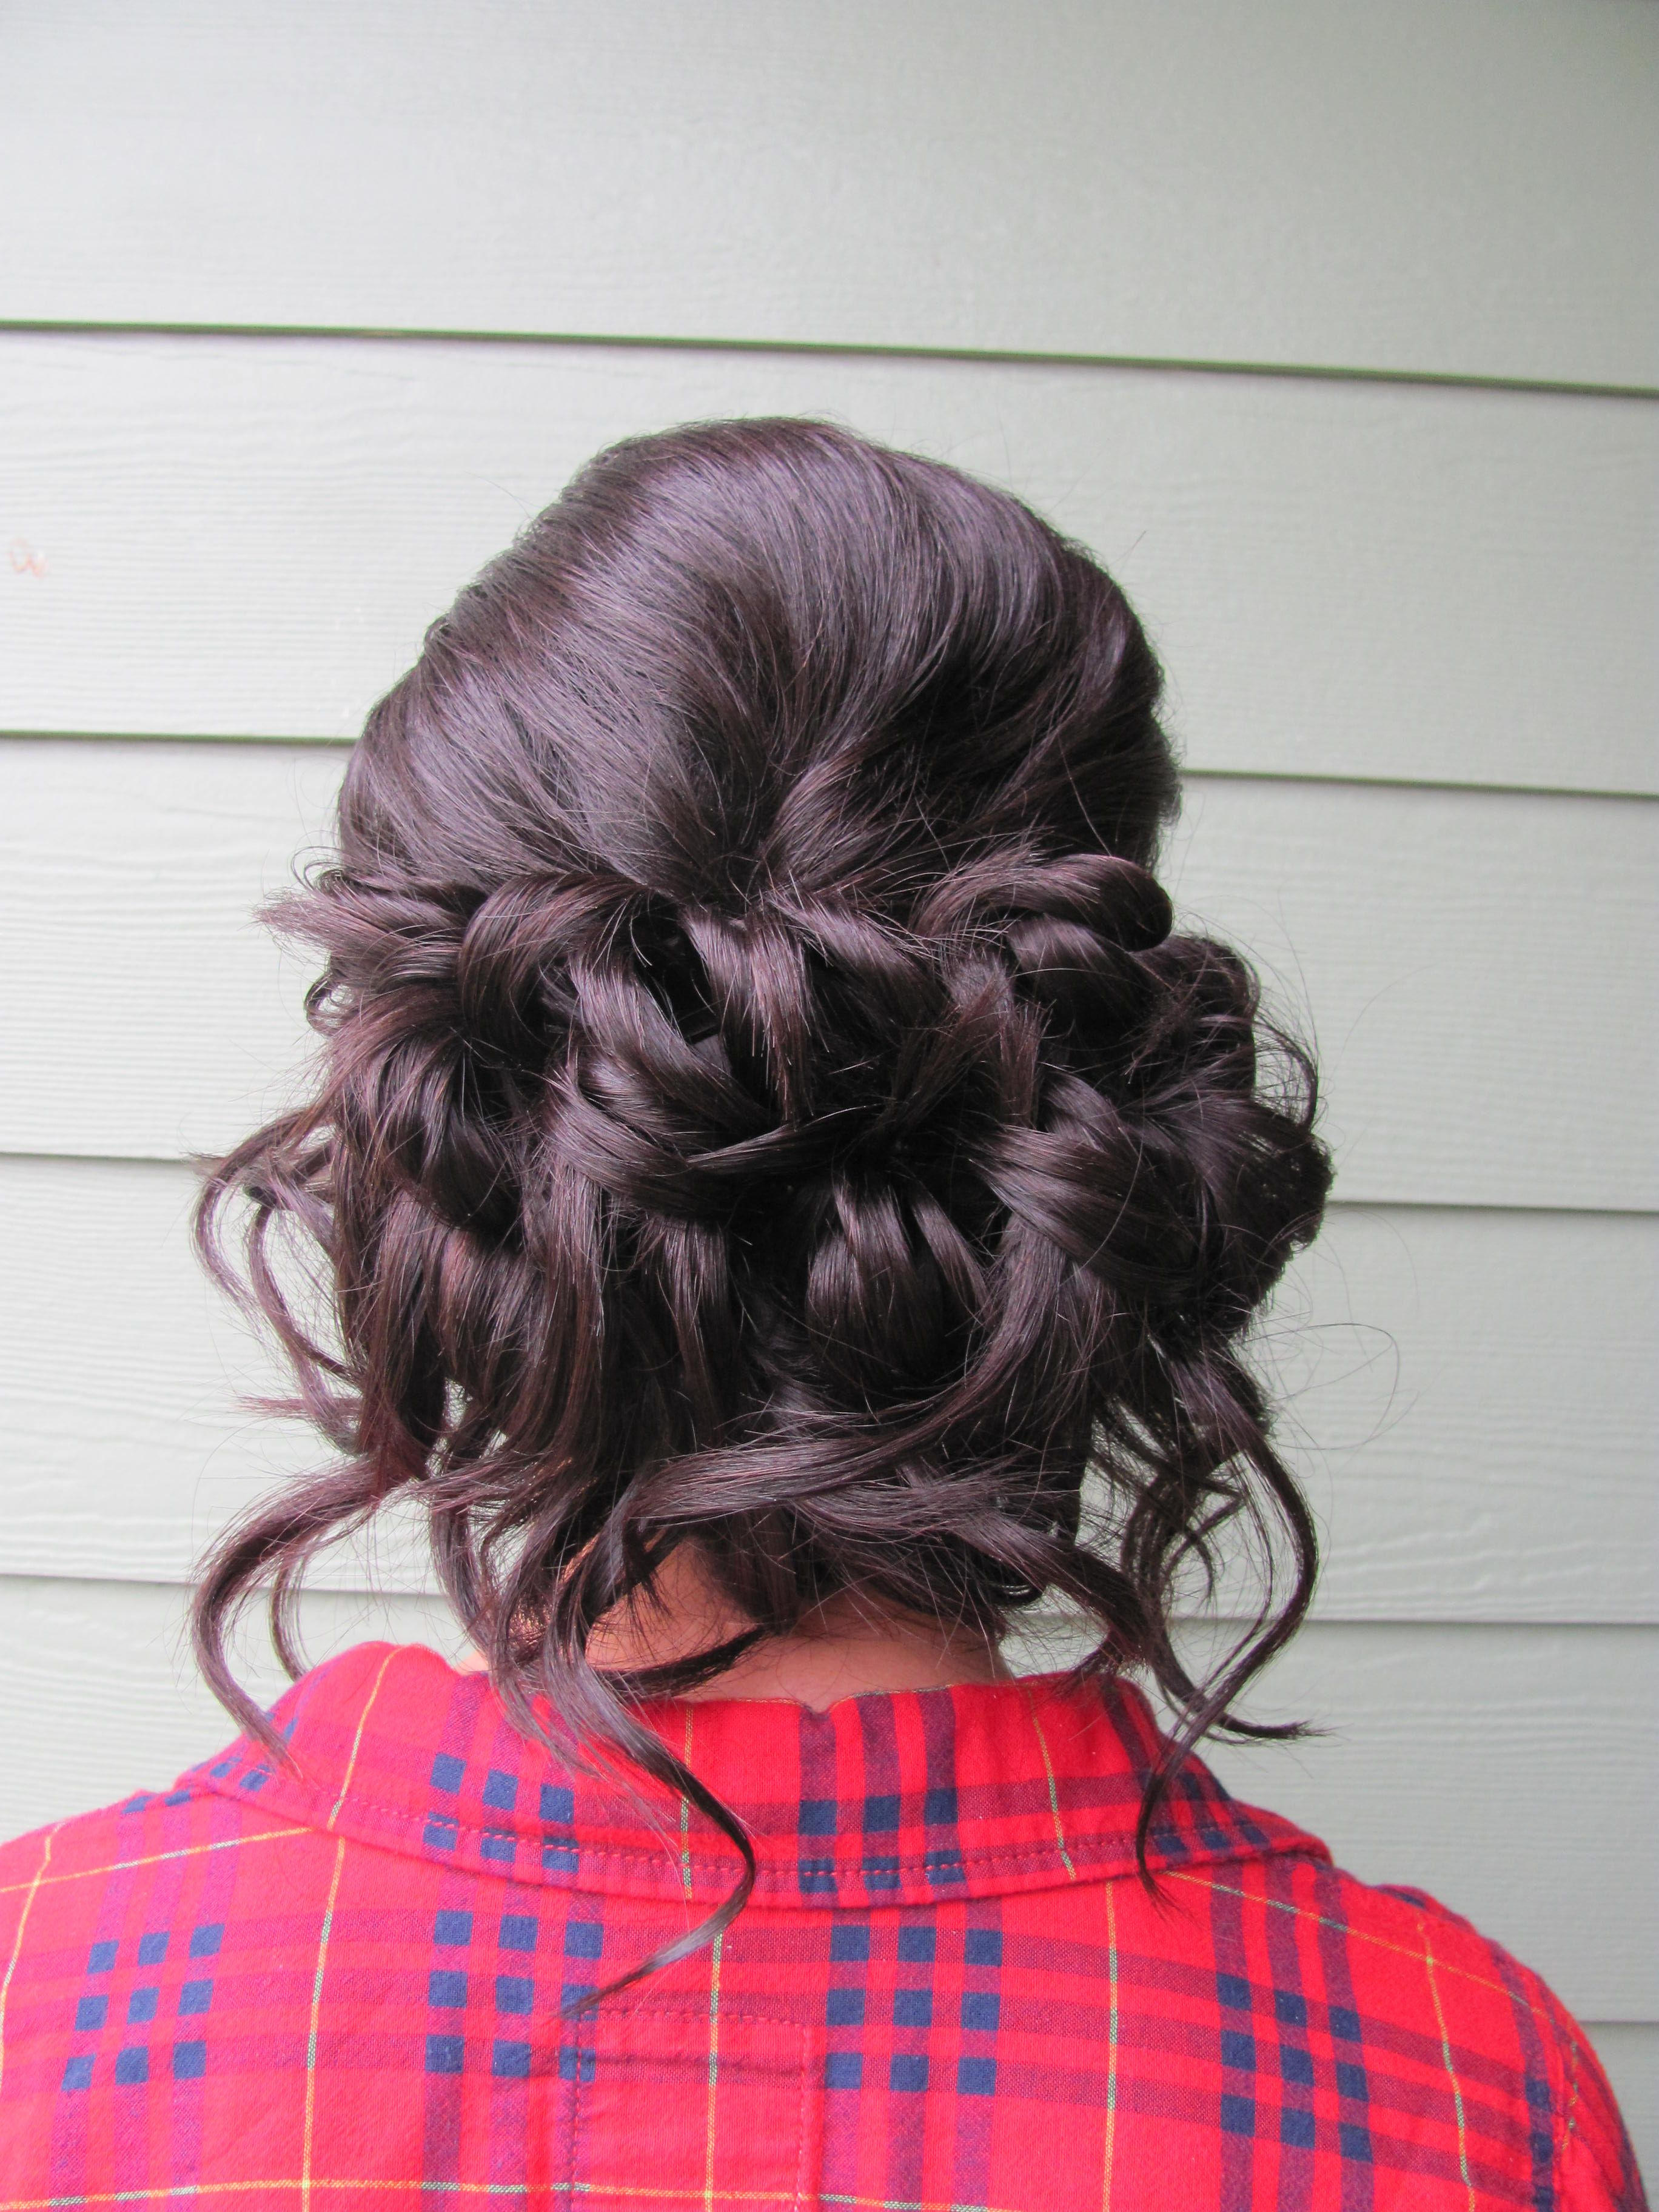 Pin By Emily Fruda On My Hair And Makeup Designs Hair Styles Black Prom Hairstyles Prom Hair